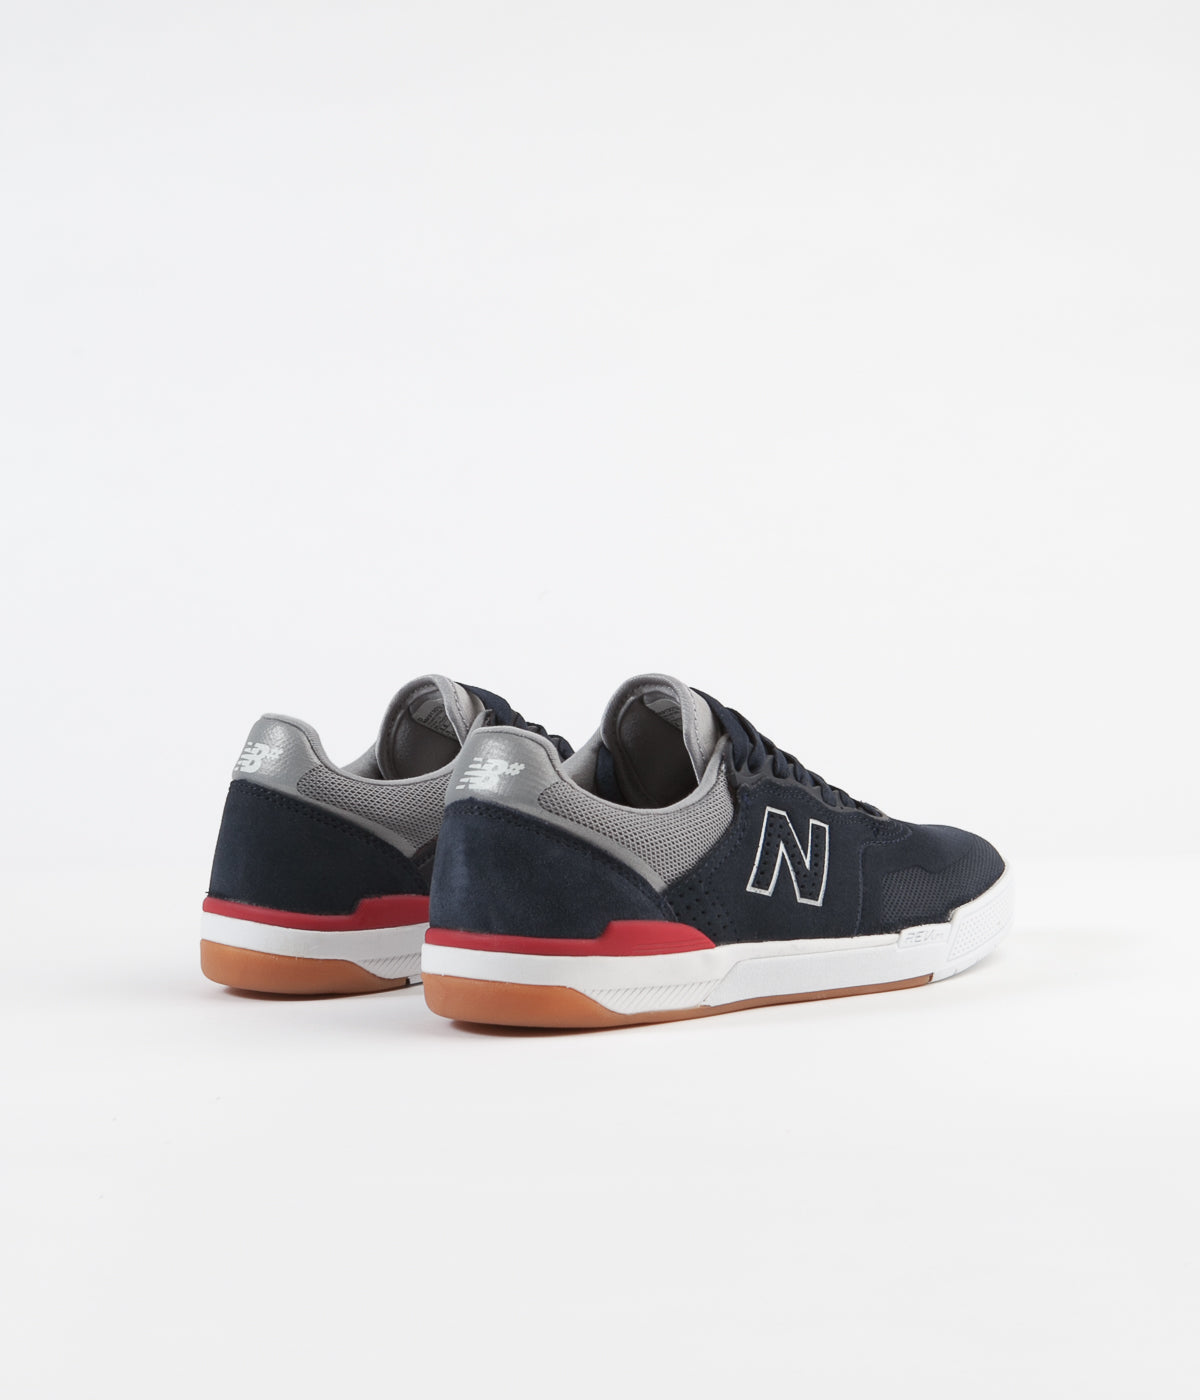 New Balance Numeric 913 Shoes - Navy / Red